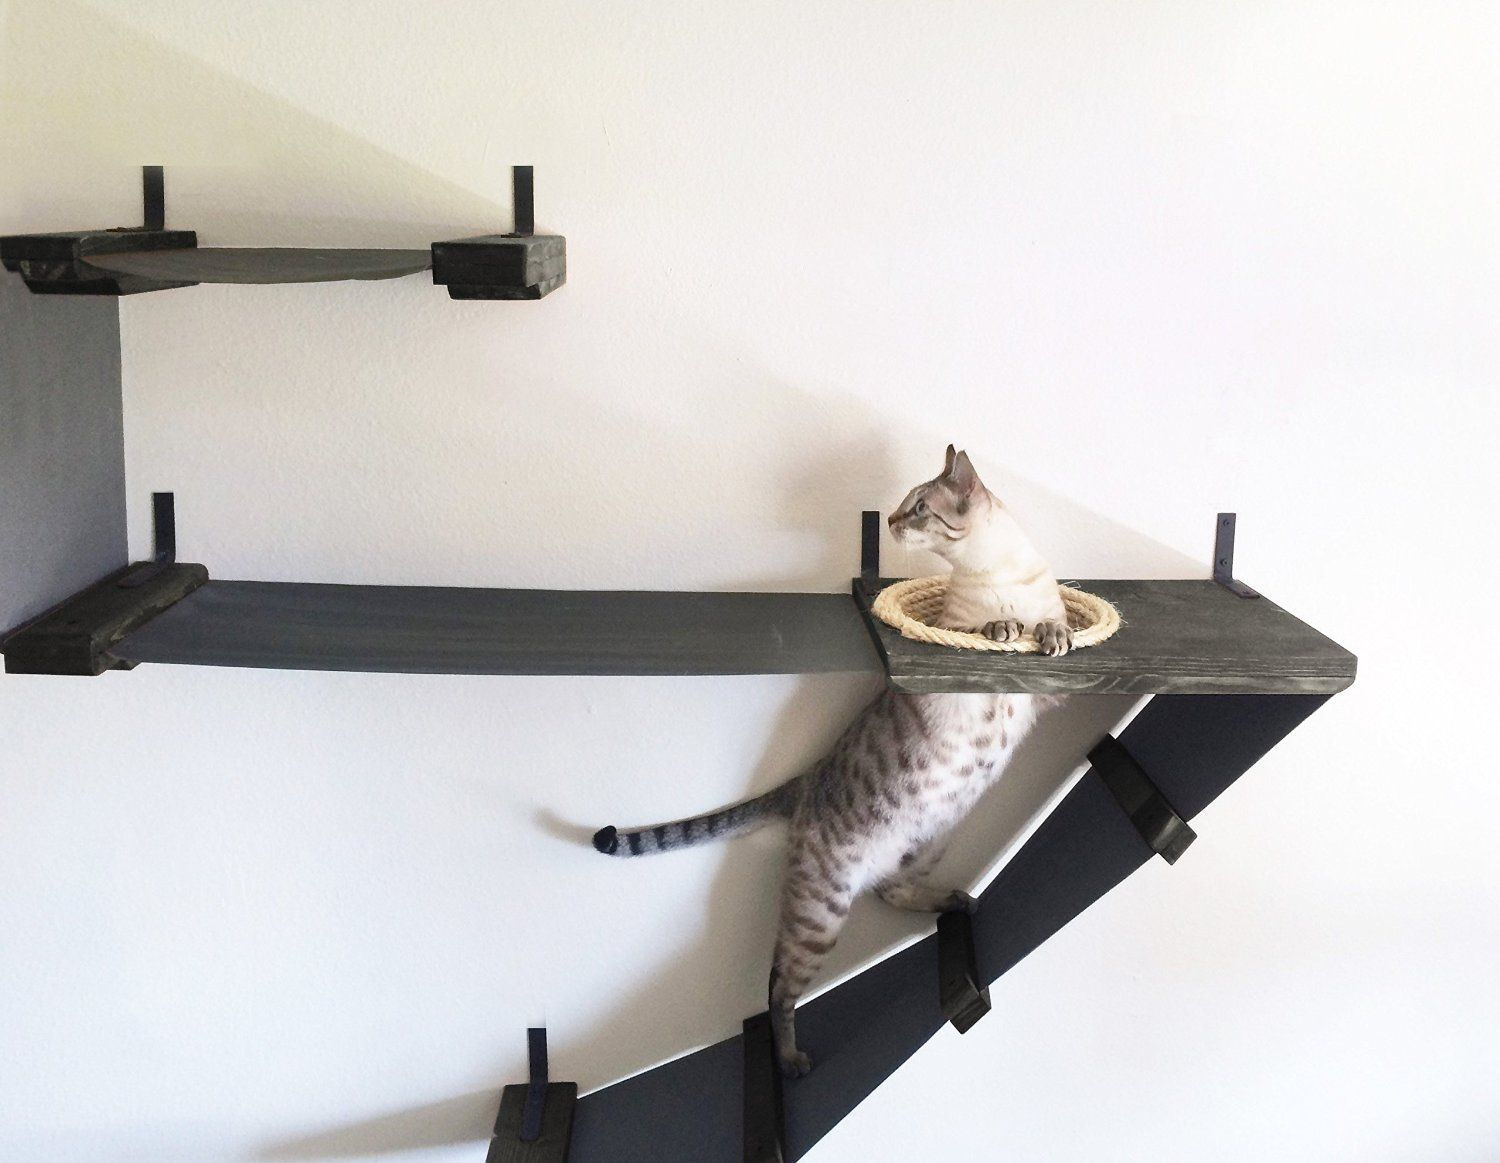 7 Creative Cat Wall Shelves To Transform Your Home Into A Chic Cat Playground Cat Wall Shelves Cat Perch Cat Hammock